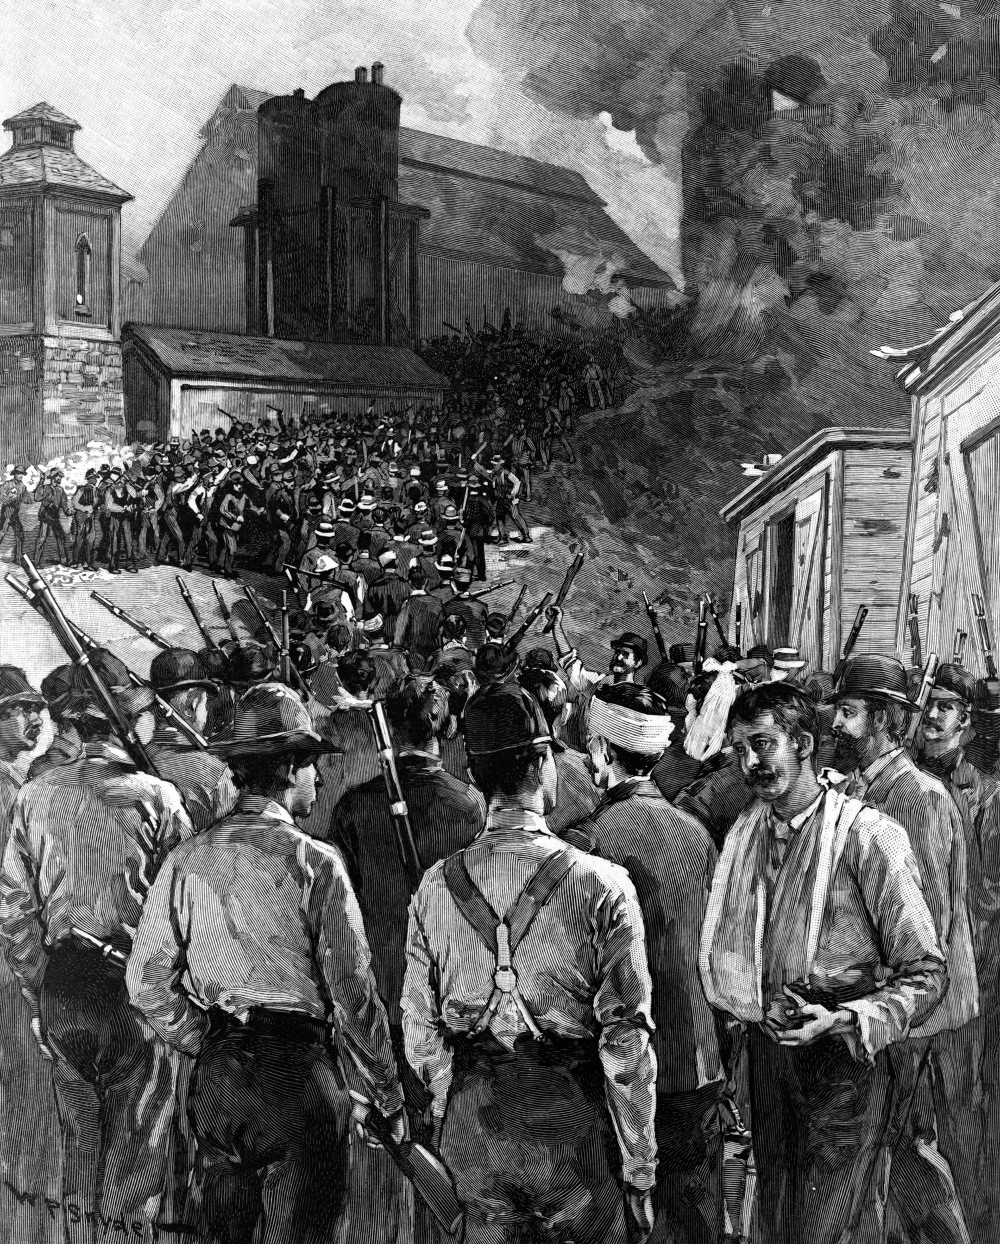 "An 1892 cover of Harper's Weekly depicting the Homestead Riot, showed Pinkerton men who had surrendered to the steel mill workers navigating a gauntlet of violent strikers. W.P. Synder (artist) after a photograph by Dabbs, ""The Homestead Riot,"" 1892. Library of Congress, LC-USZ62-126046."